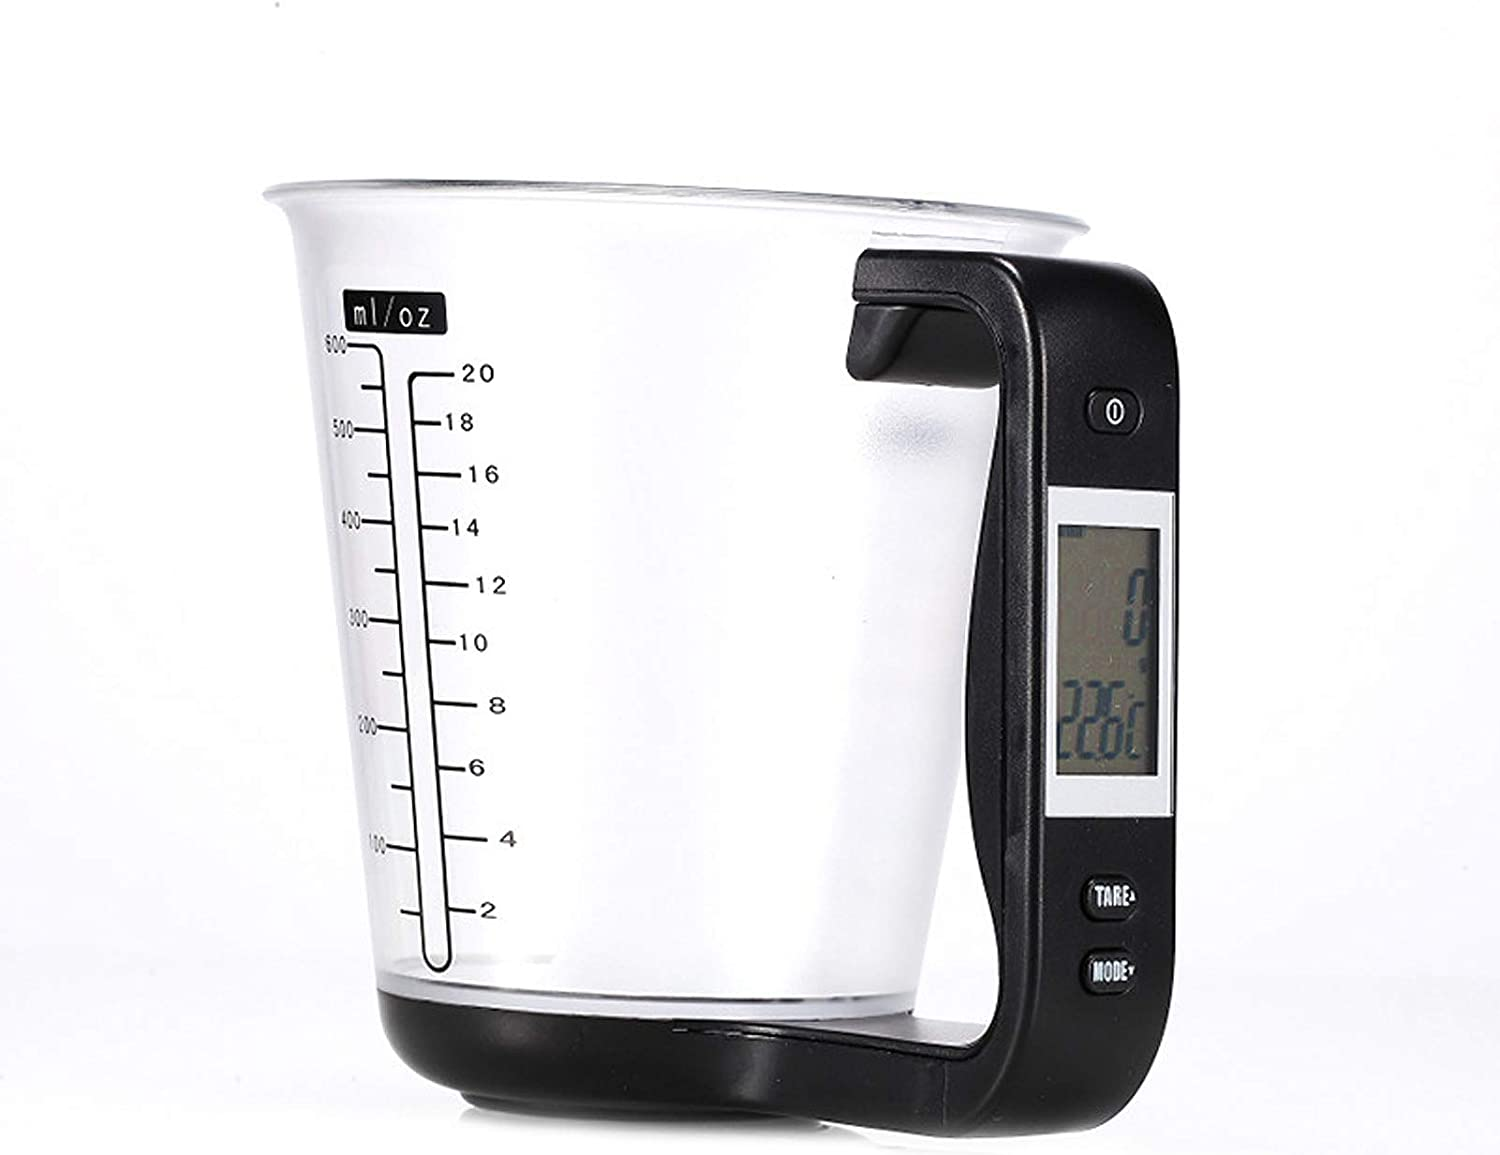 KT THERMO Digital Measuring Cup with Scales Grams and Ounces - Measurement cup scale perfect for baking kitchen food milk weighting (Black)